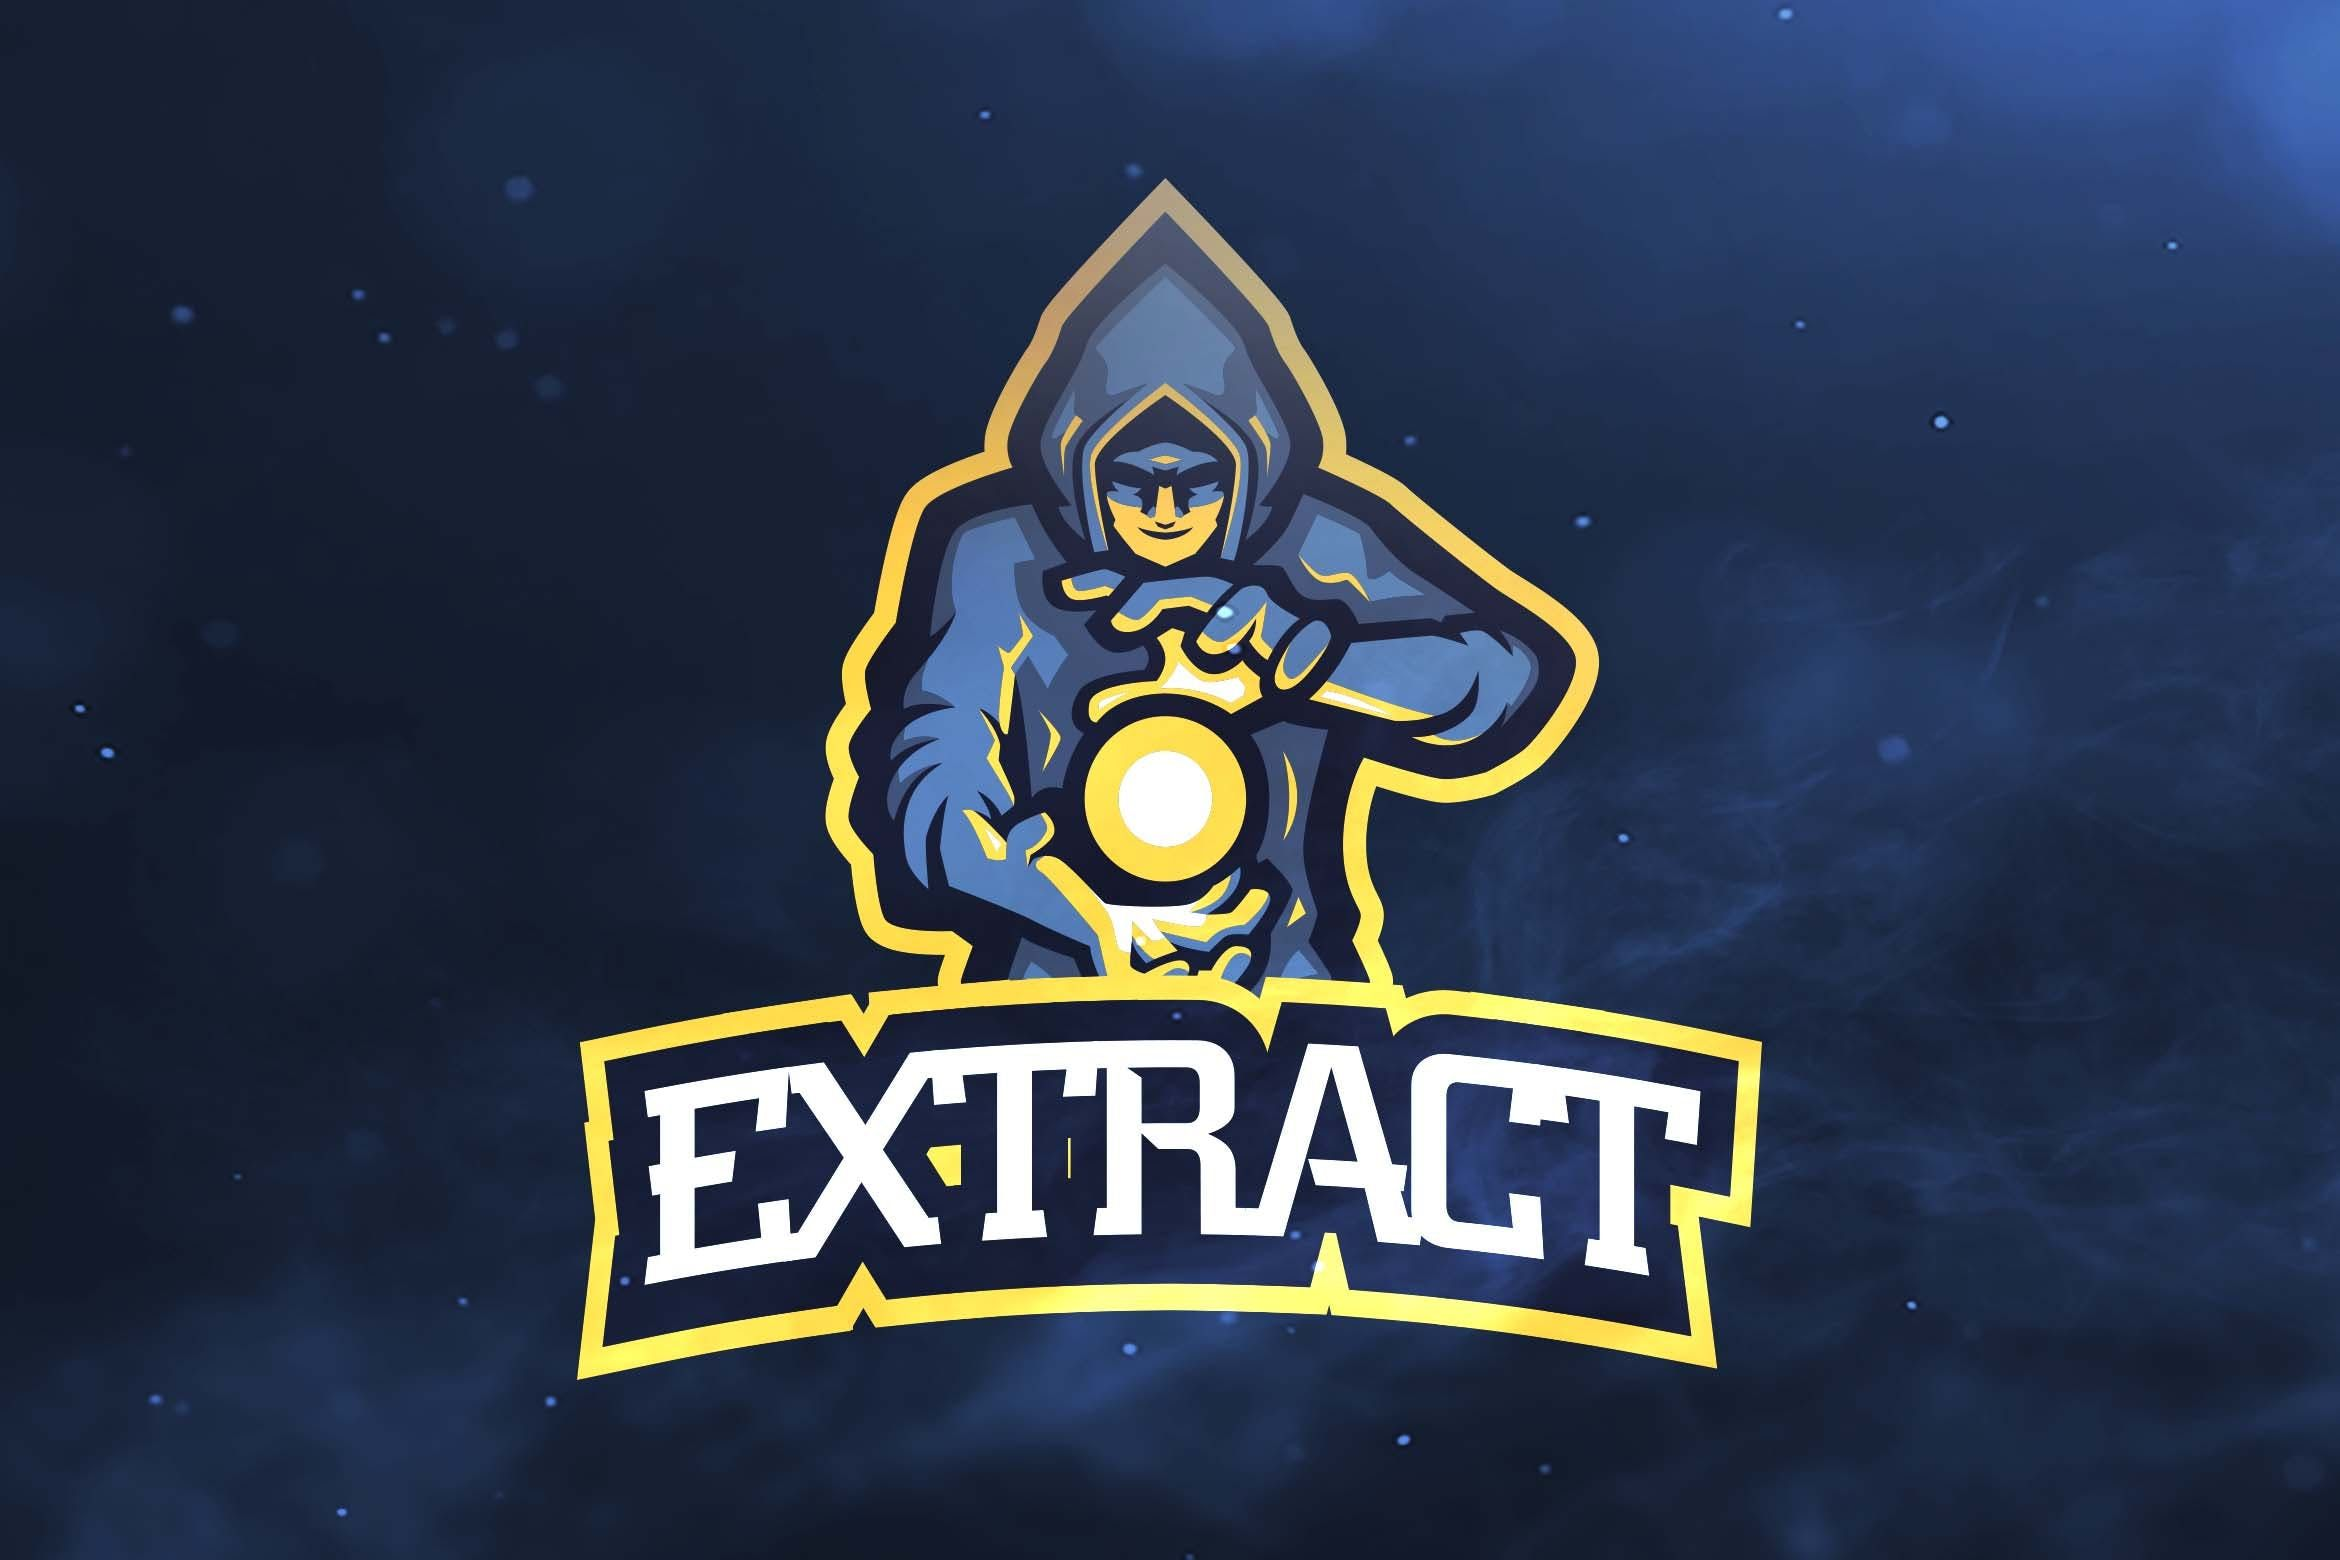 Extract Sport and Esports Logos by ovozdigital on in 2020